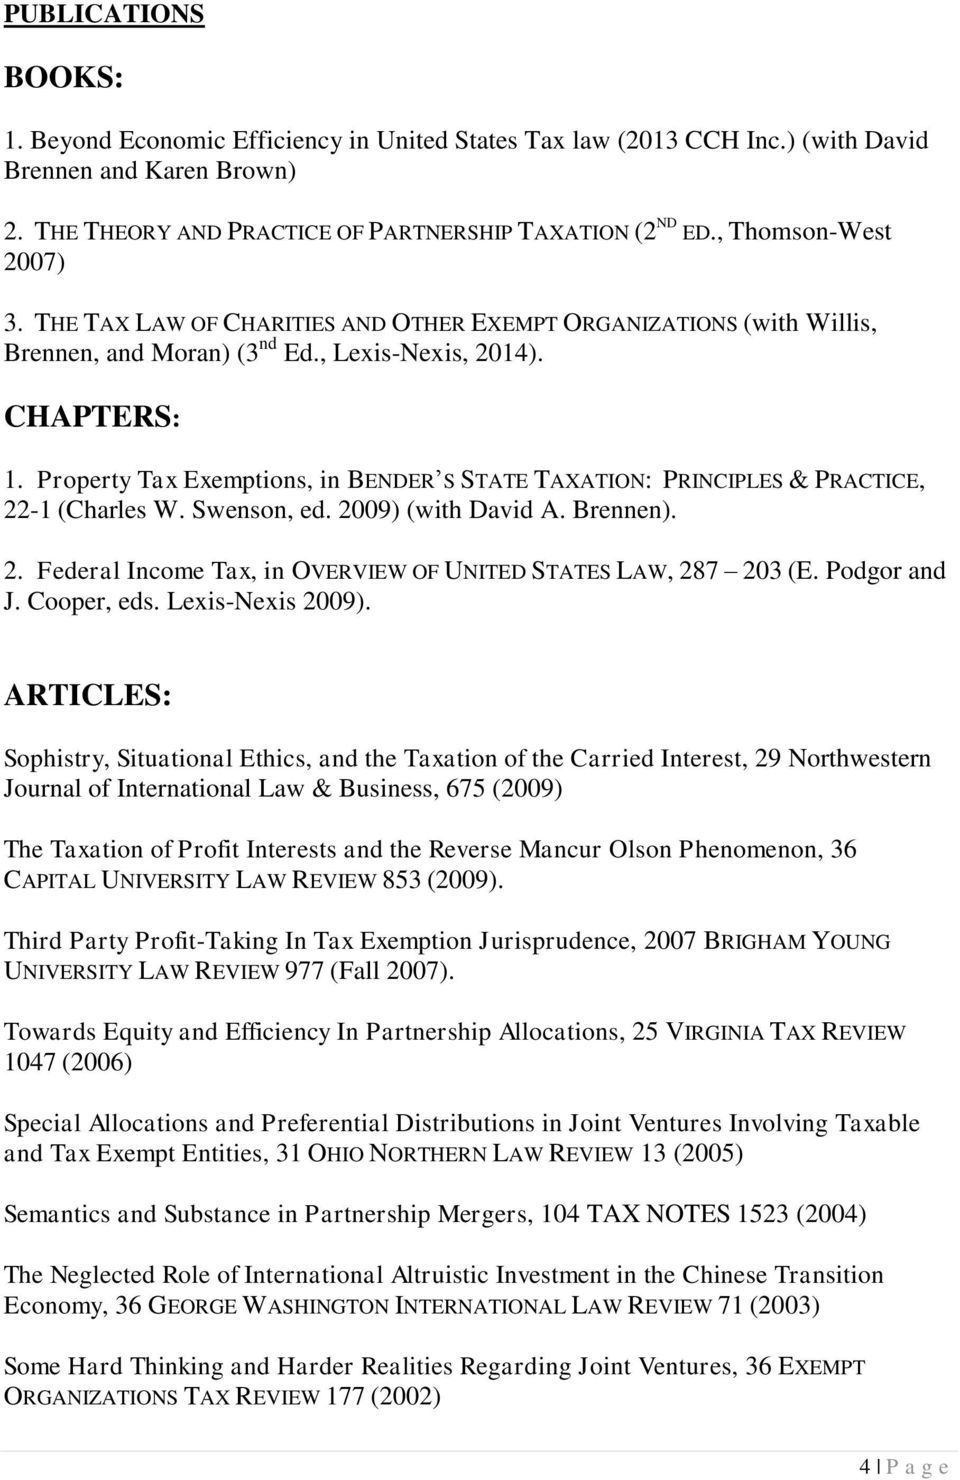 Property Tax Exemptions, in BENDER S STATE TAXATION: PRINCIPLES & PRACTICE, 22-1 (Charles W. Swenson, ed. 2009) (with David A. Brennen). 2. Federal Income Tax, in OVERVIEW OF UNITED STATES LAW, 287 203 (E.